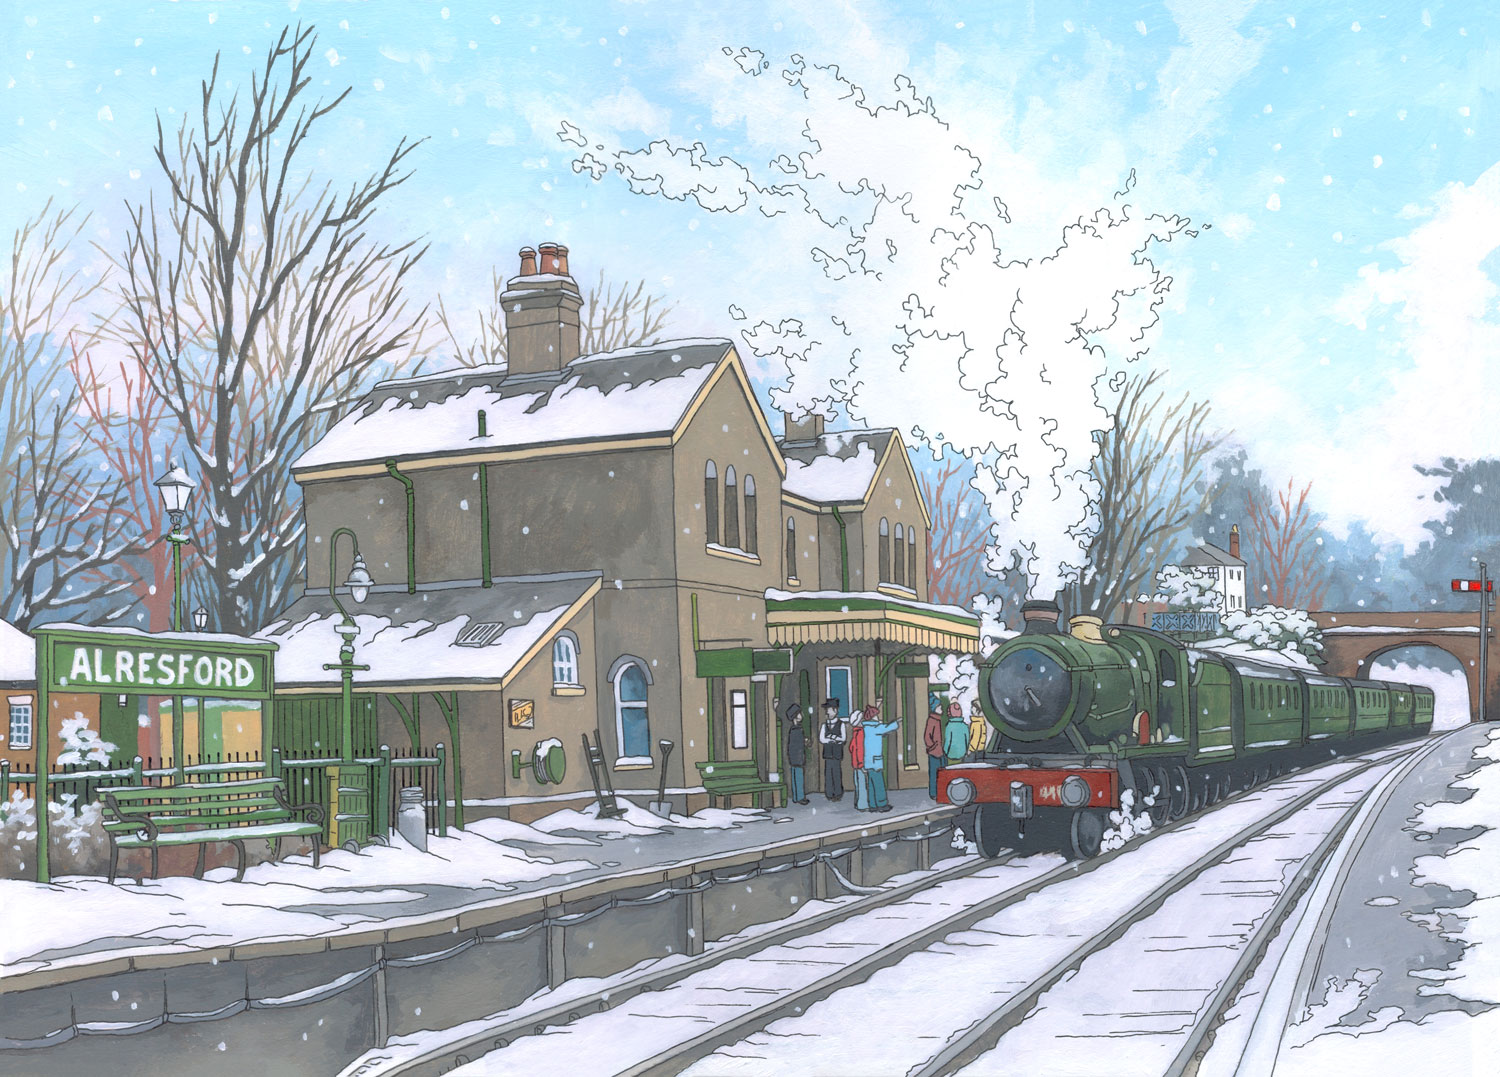 Alresford-Steam-Engine-Illustration-by-Jonathan-Chapman